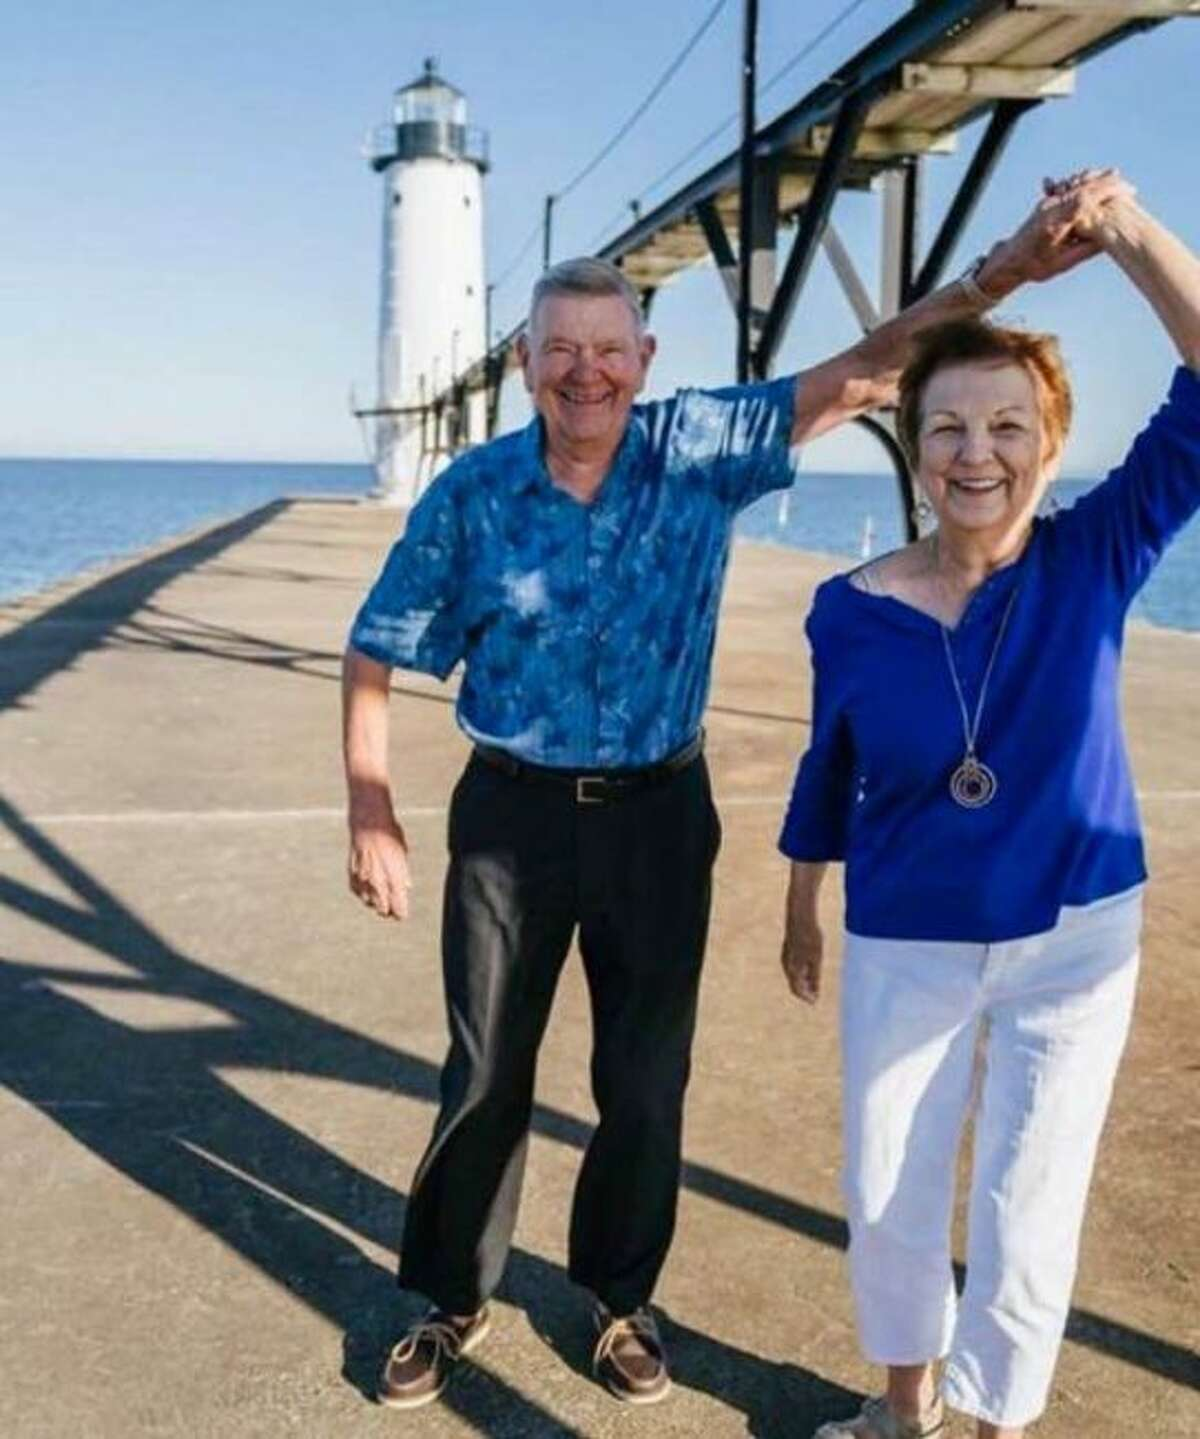 On July 13, Judy and Phil Asiala, of Manistee, will celebrate their 60th wedding anniversary with family and friends at the Manistee Elks Club. Judy and Phil were married on July 11, 1959. They have four daughters, 10 grandchildren and seven great-grandchildren. (Courtesy photo)